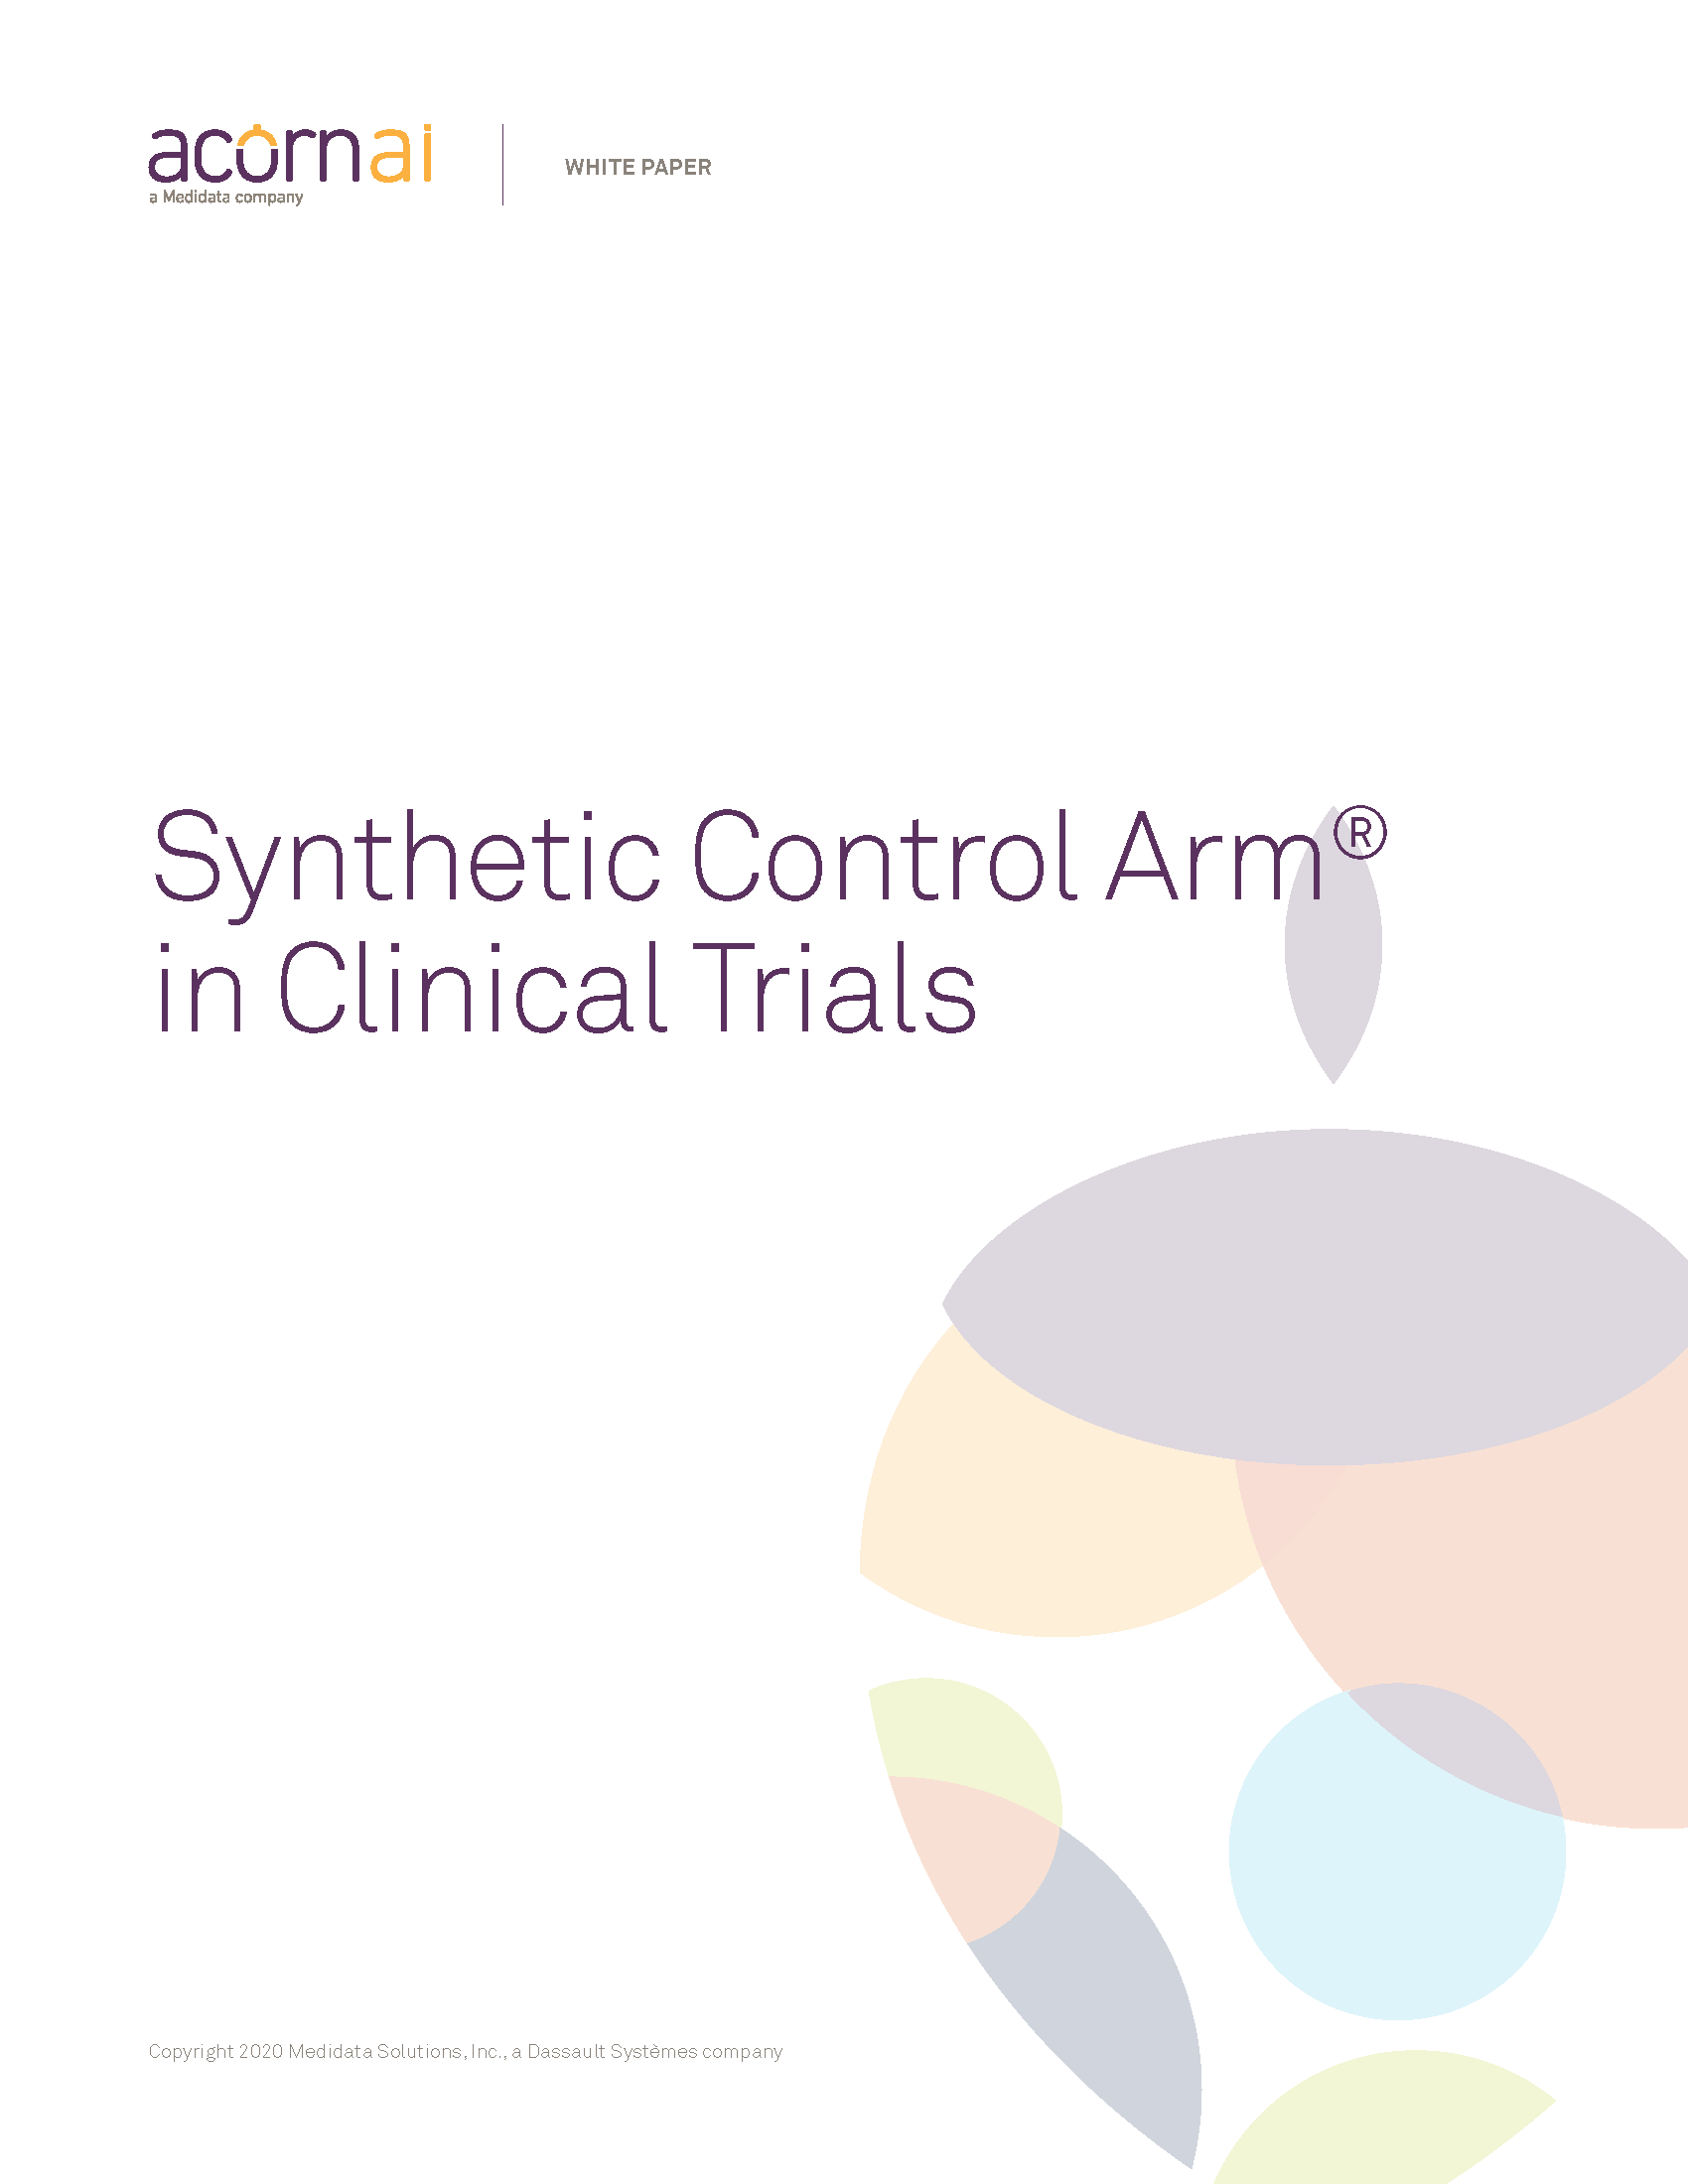 Synthetic Control Arm® in Clinical Trials